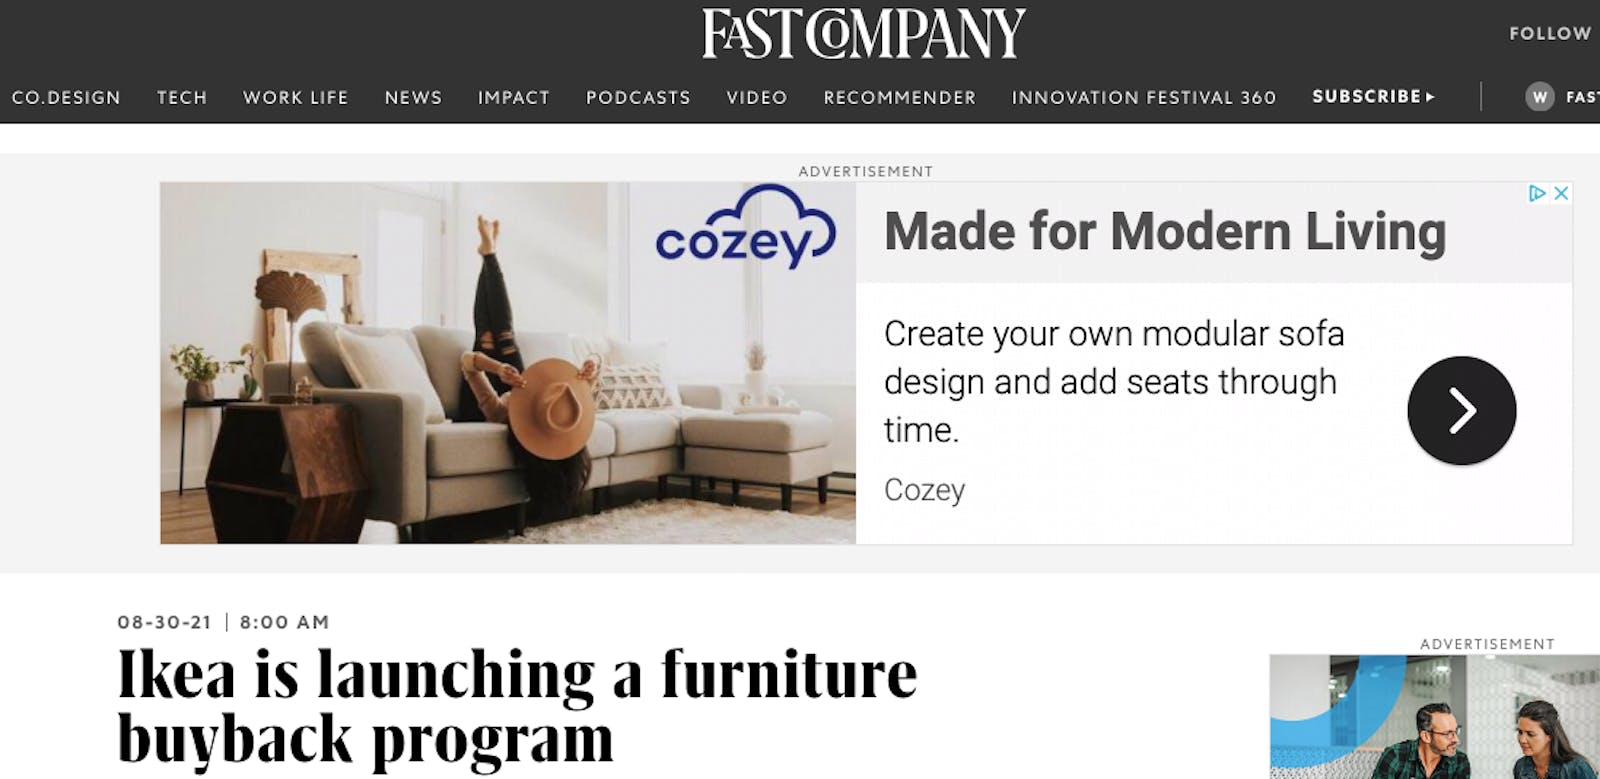 An ad for Cozey is shown above an article on Fast Company